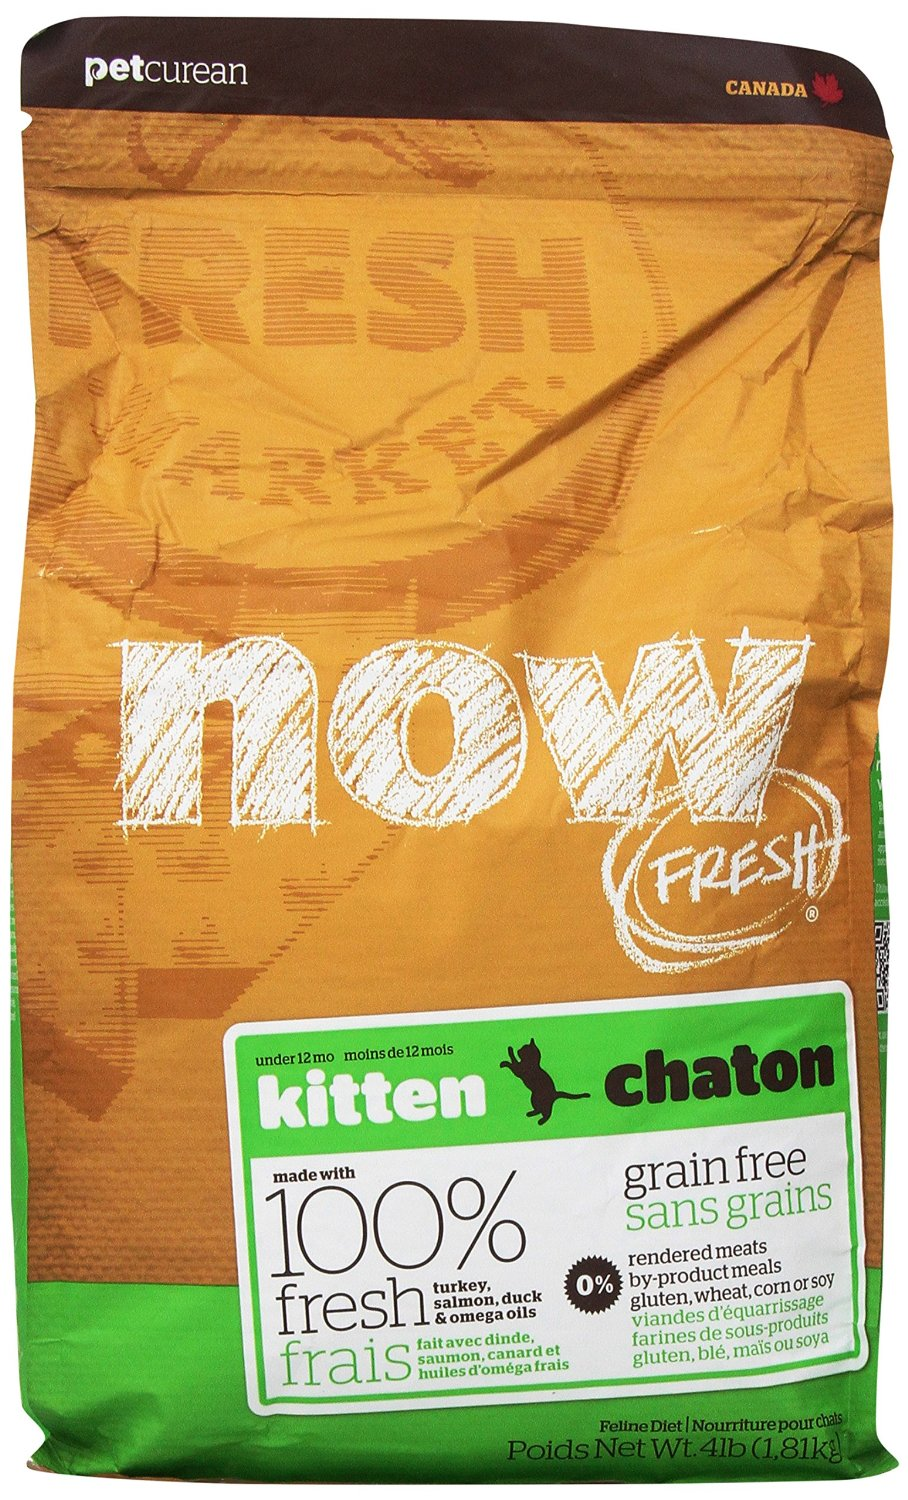 Petcurean Cat Now Fresh Grain-Free Kitten Recipe Dry Cat Food, 4lbs